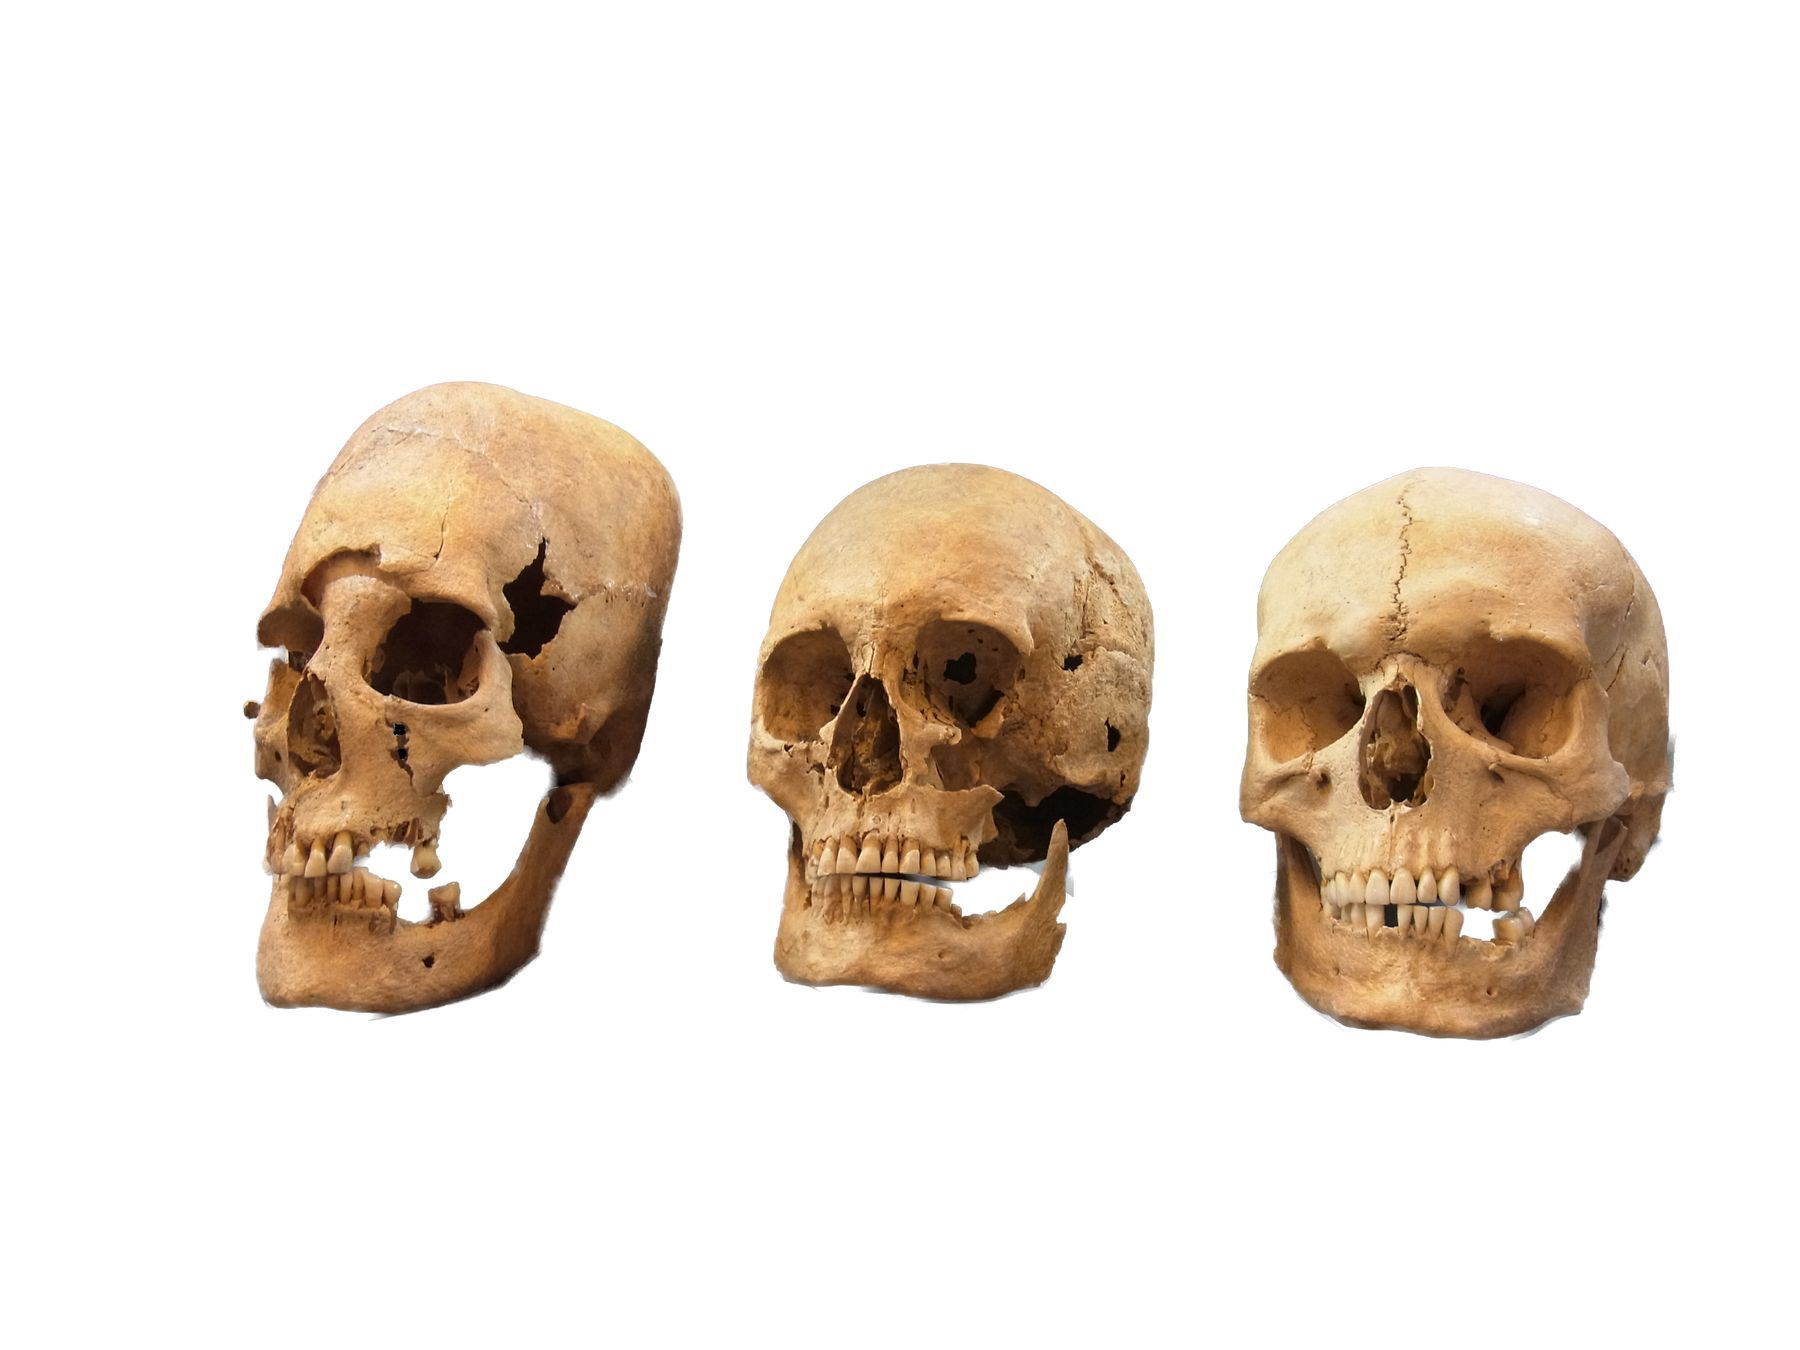 Researchers discover early medieval women with their skulls altered in Germany